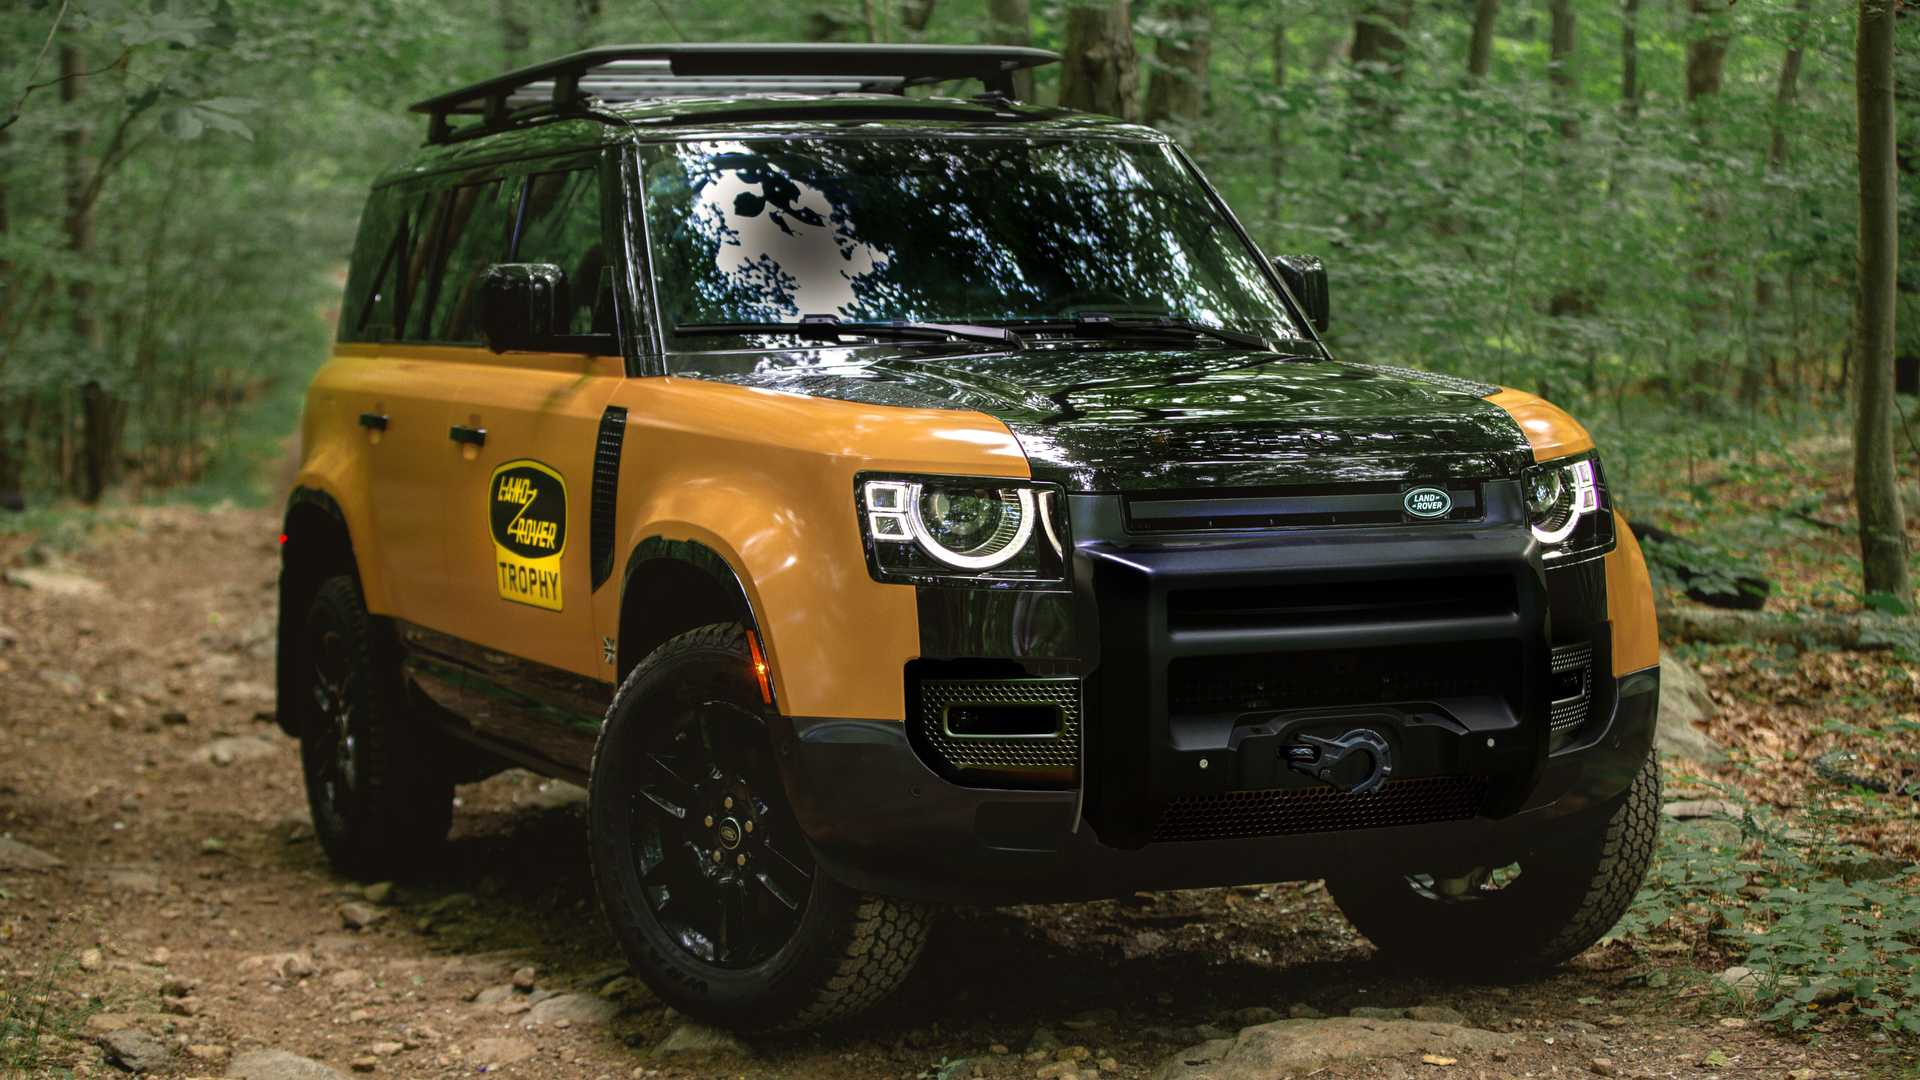 The trophy SUV will emerge in the United States in a batch limited to 220 units priced starting from $90,000. The sales will begin in August.